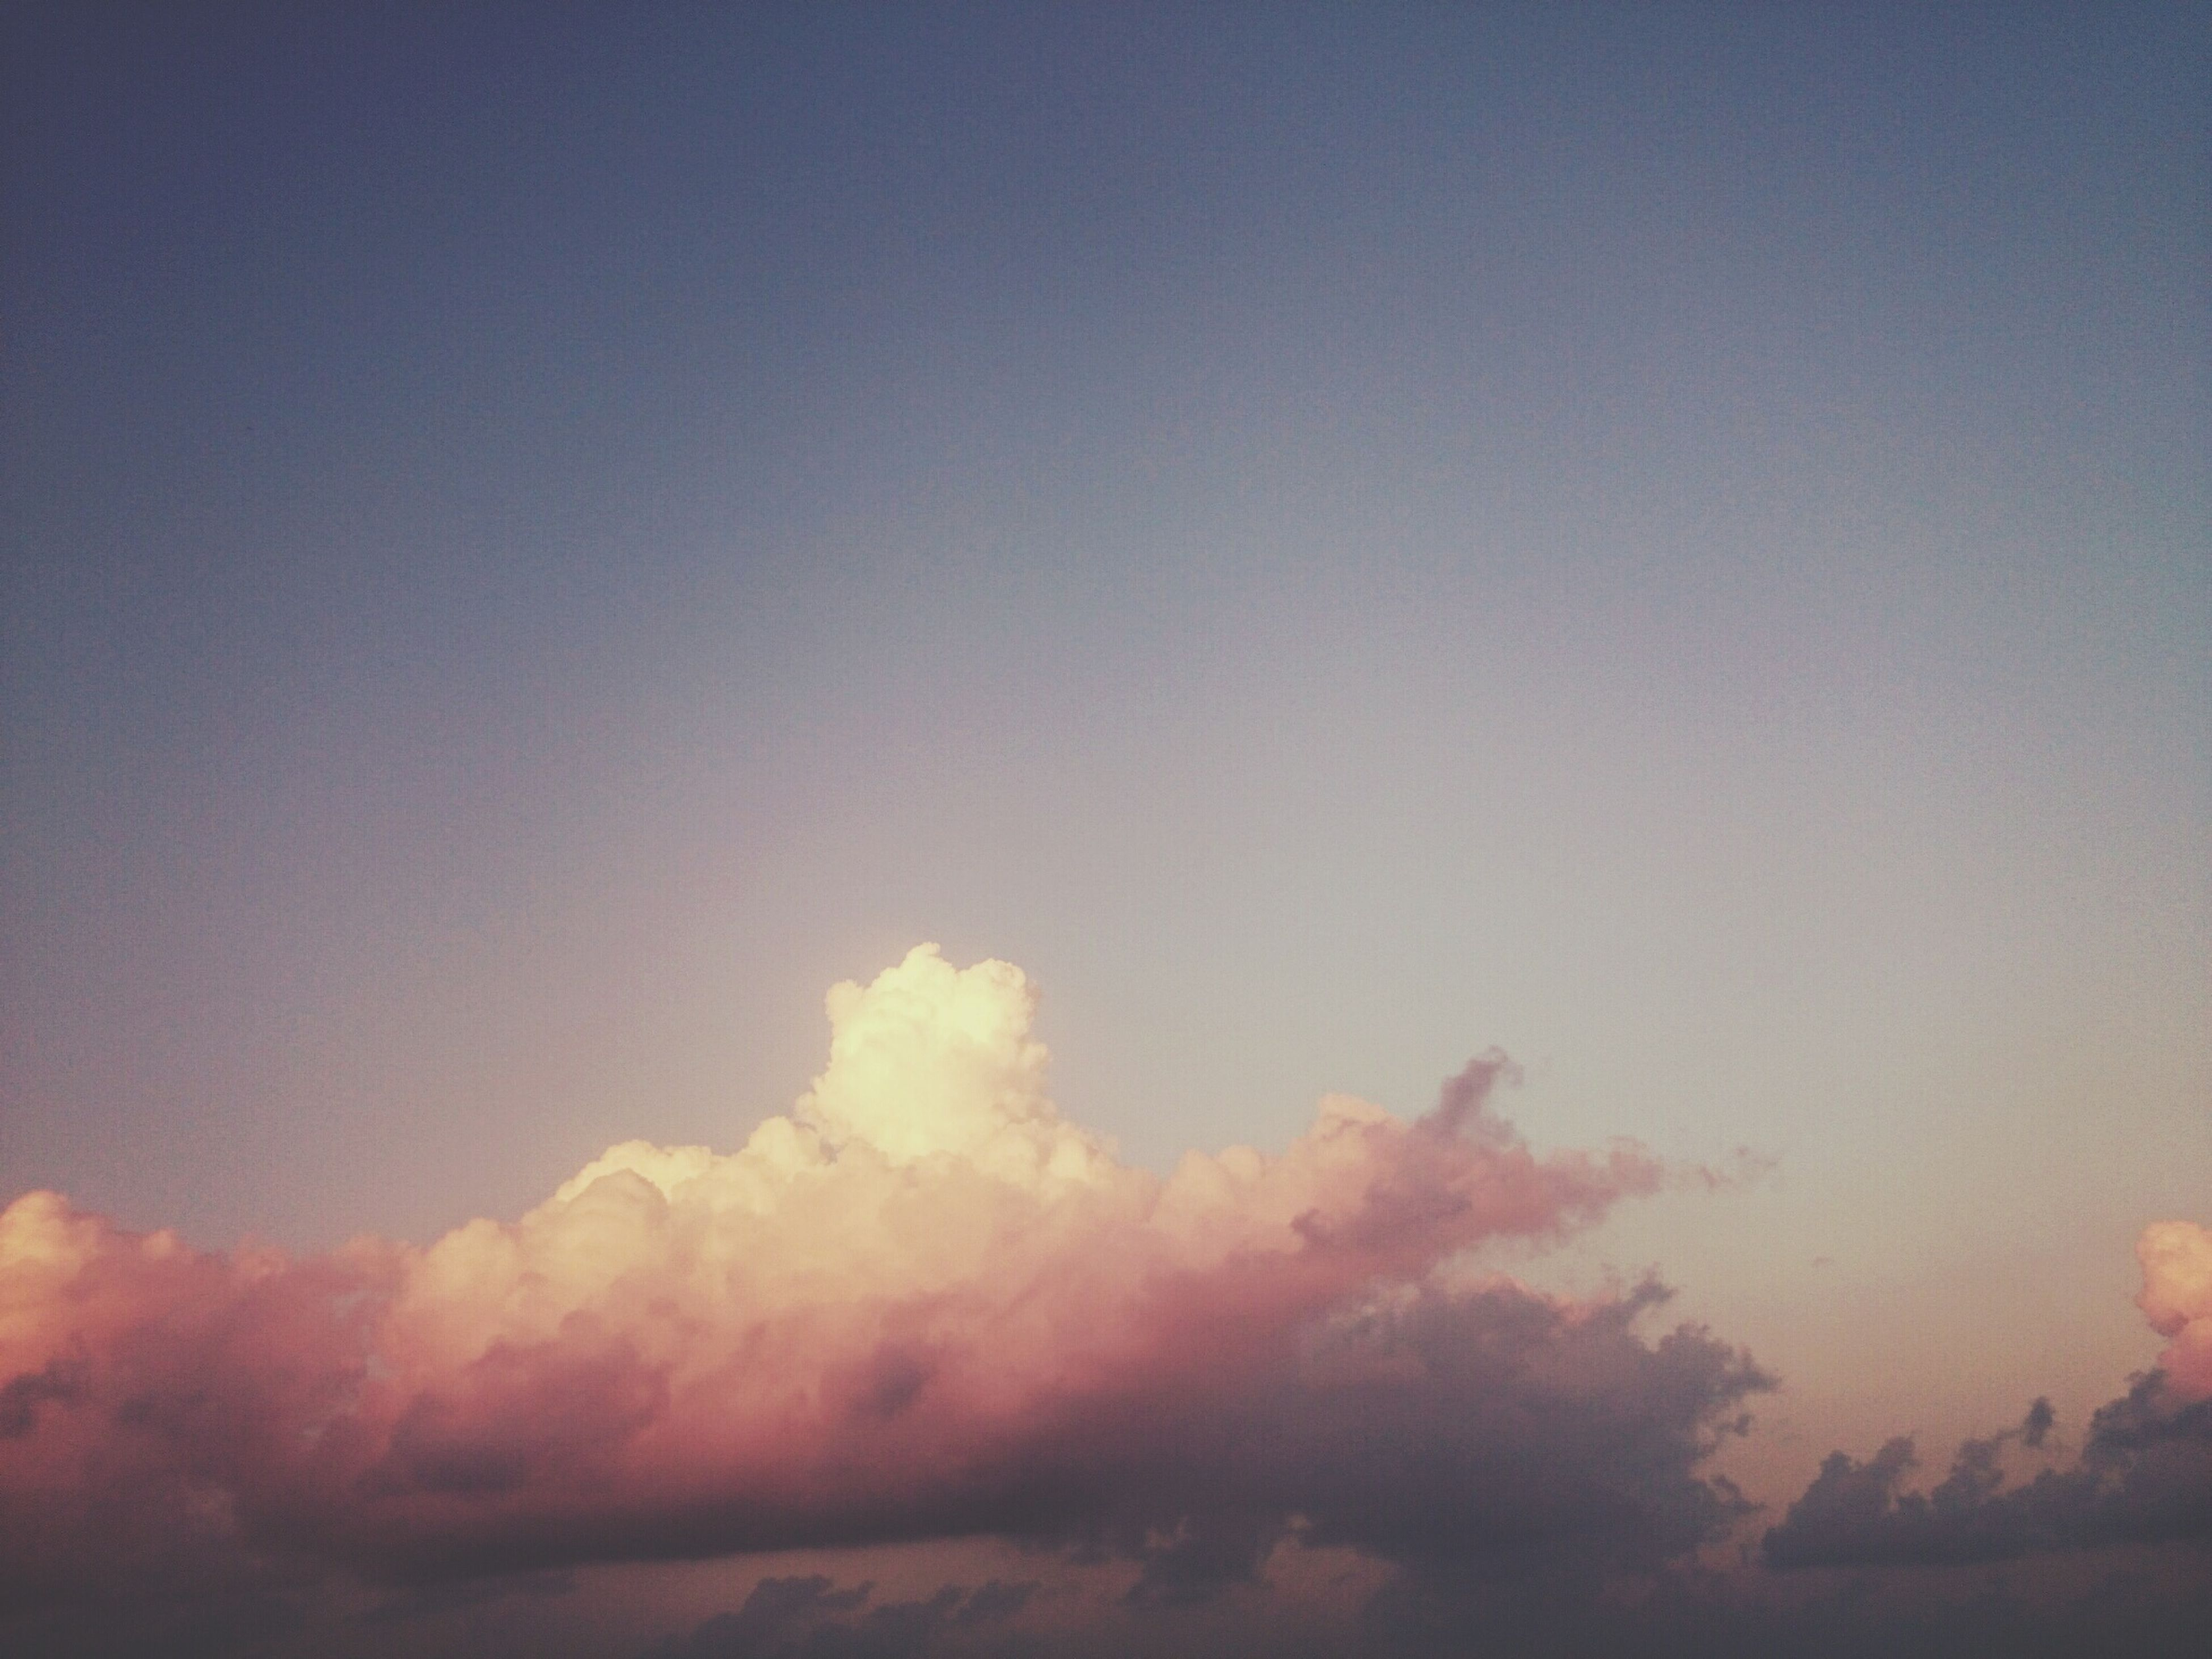 sky, beauty in nature, scenics, low angle view, tranquility, sunset, tranquil scene, nature, sky only, cloud - sky, idyllic, copy space, cloudscape, silhouette, majestic, outdoors, no people, blue, cloud, backgrounds